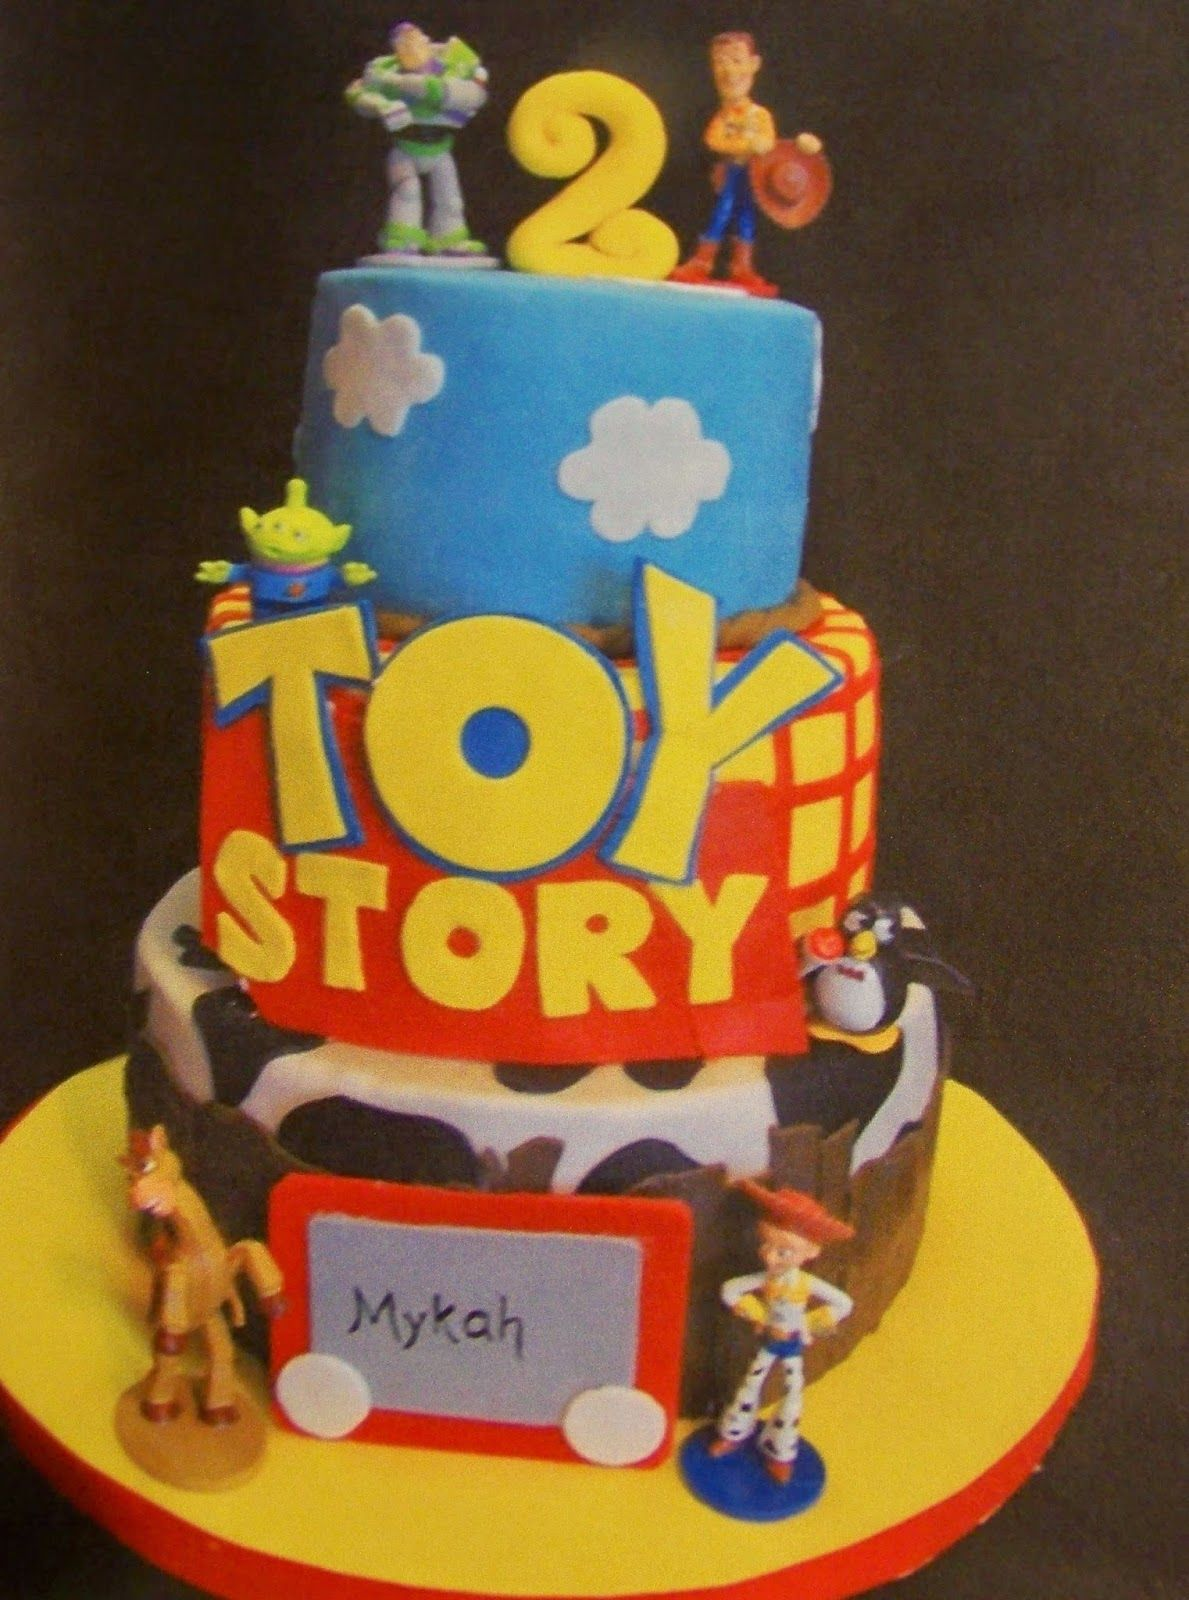 Cake Decoration Toys : A Slice of Heaven Custom Cakes Online Cake Decorating ...